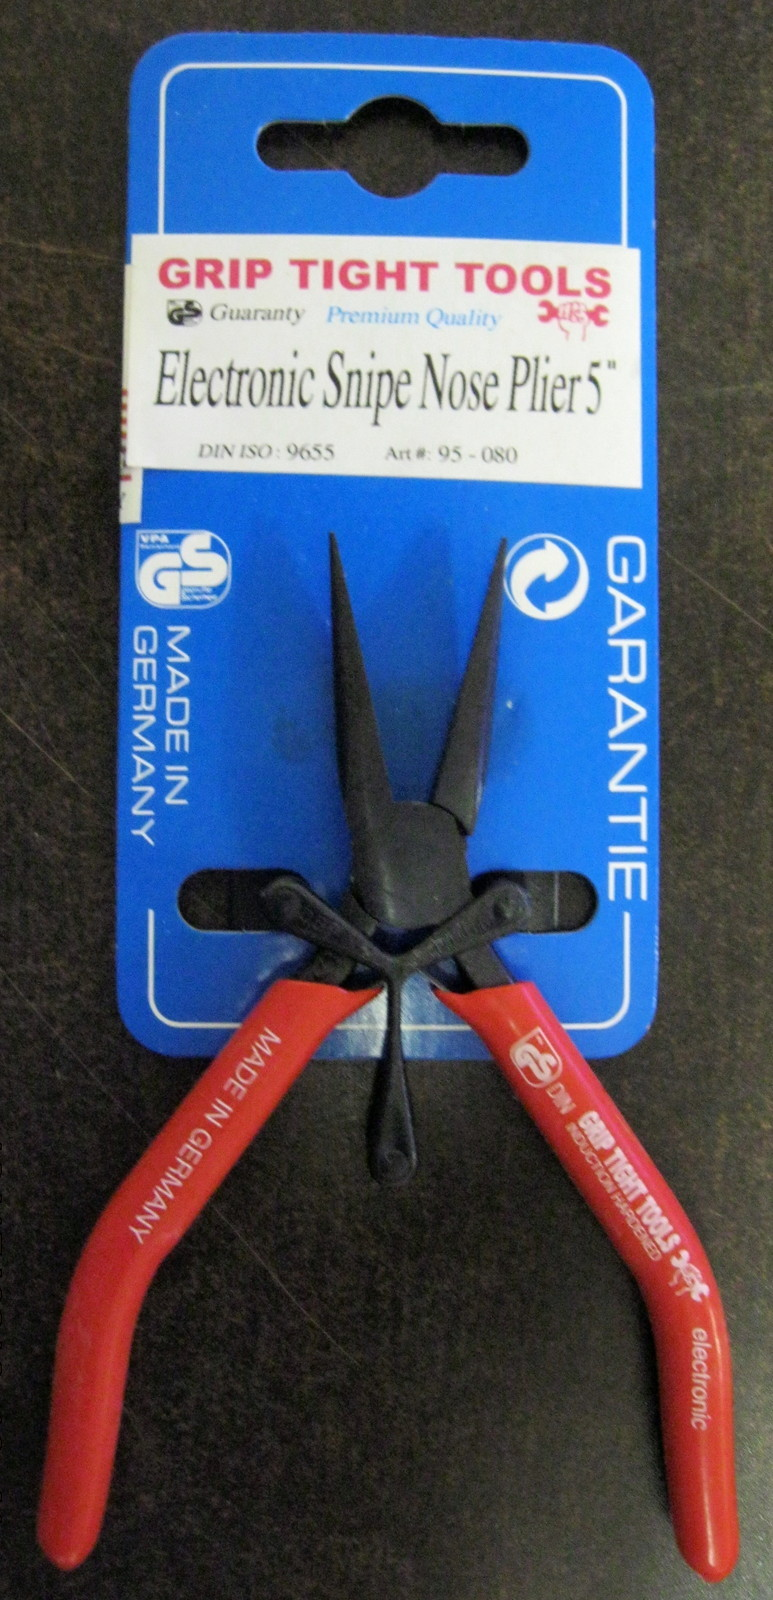 """New Grip Tight Tools 5"""" Electronic Snipe Nose Mini Plier #95-080"""